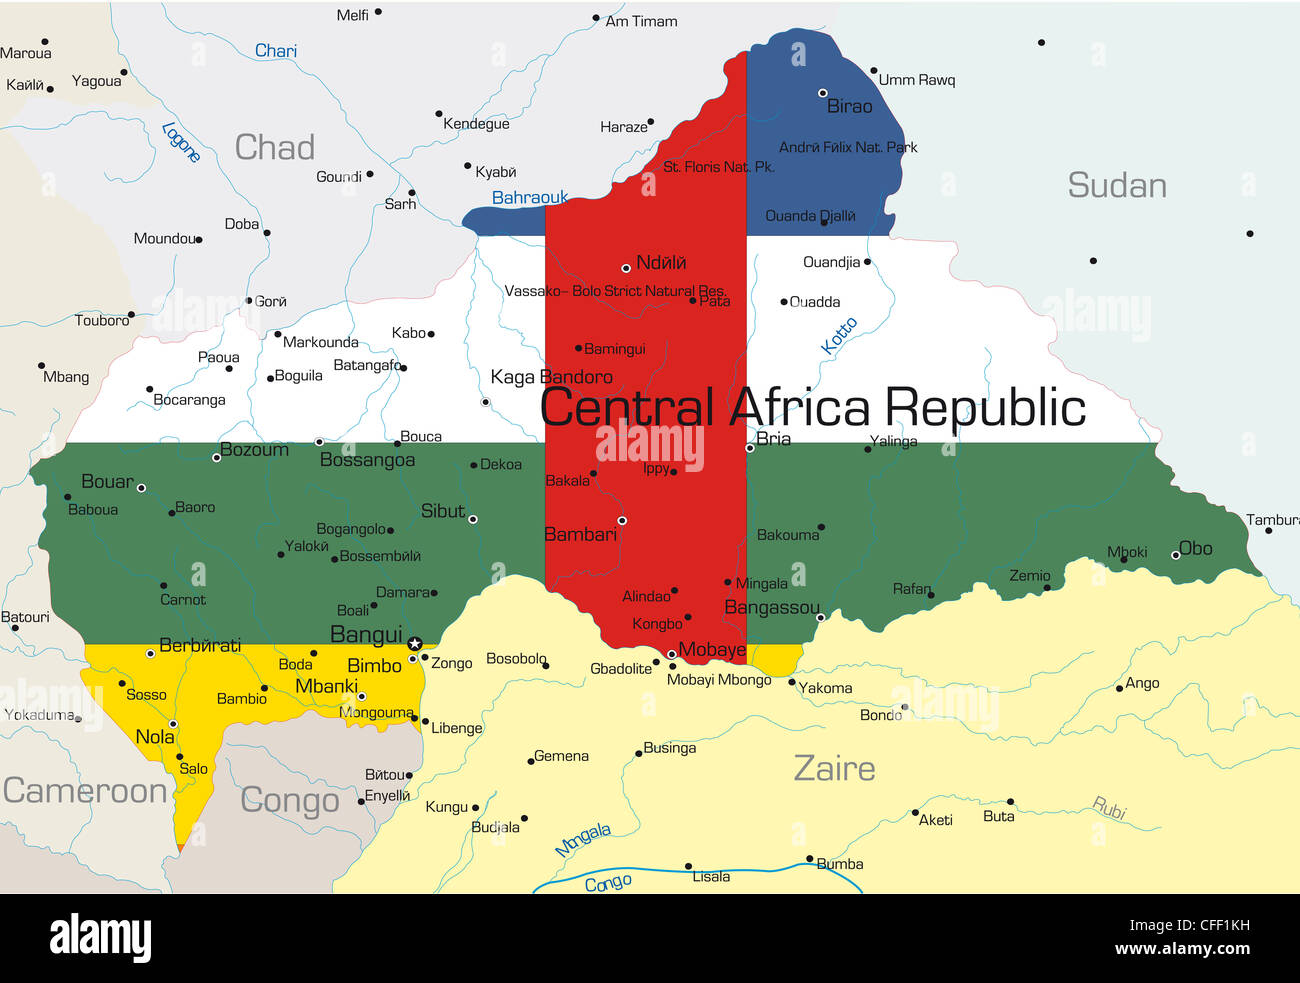 Abstract vector color map of Central Africa Republic country colored